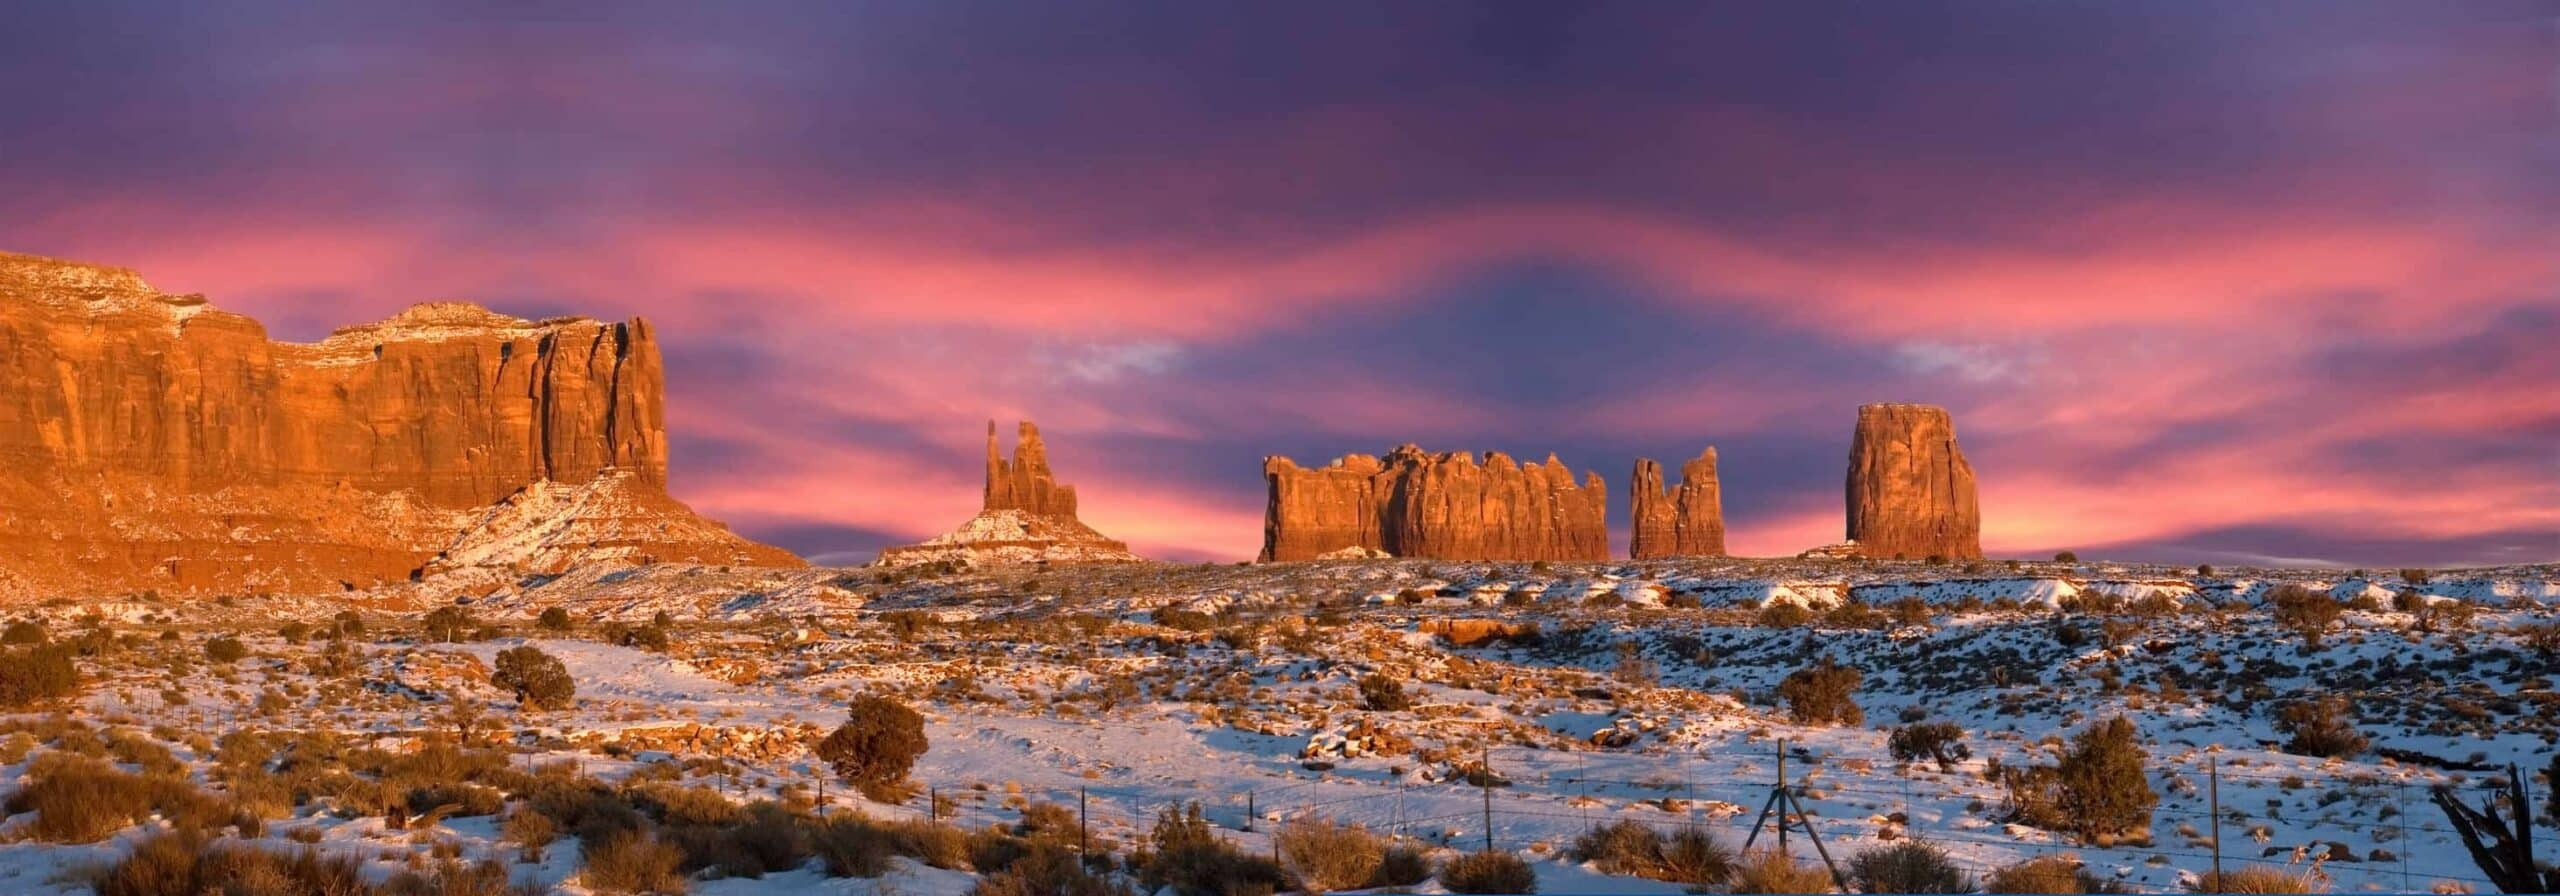 Panoramic sunset scene from the Monument Valley Navajo Indian Reservation Tribal Park in Arizona and Utah. Monoliths rise above the desert and glow as the setting sun shines upon them. Winter snow adds a surreal effect. The area is famous for the old John Ford movies being filmed here, many of them starring John Wayne. Monument Valley is now an international travel destination with people and tourists coming from all over the world just to look at the view.